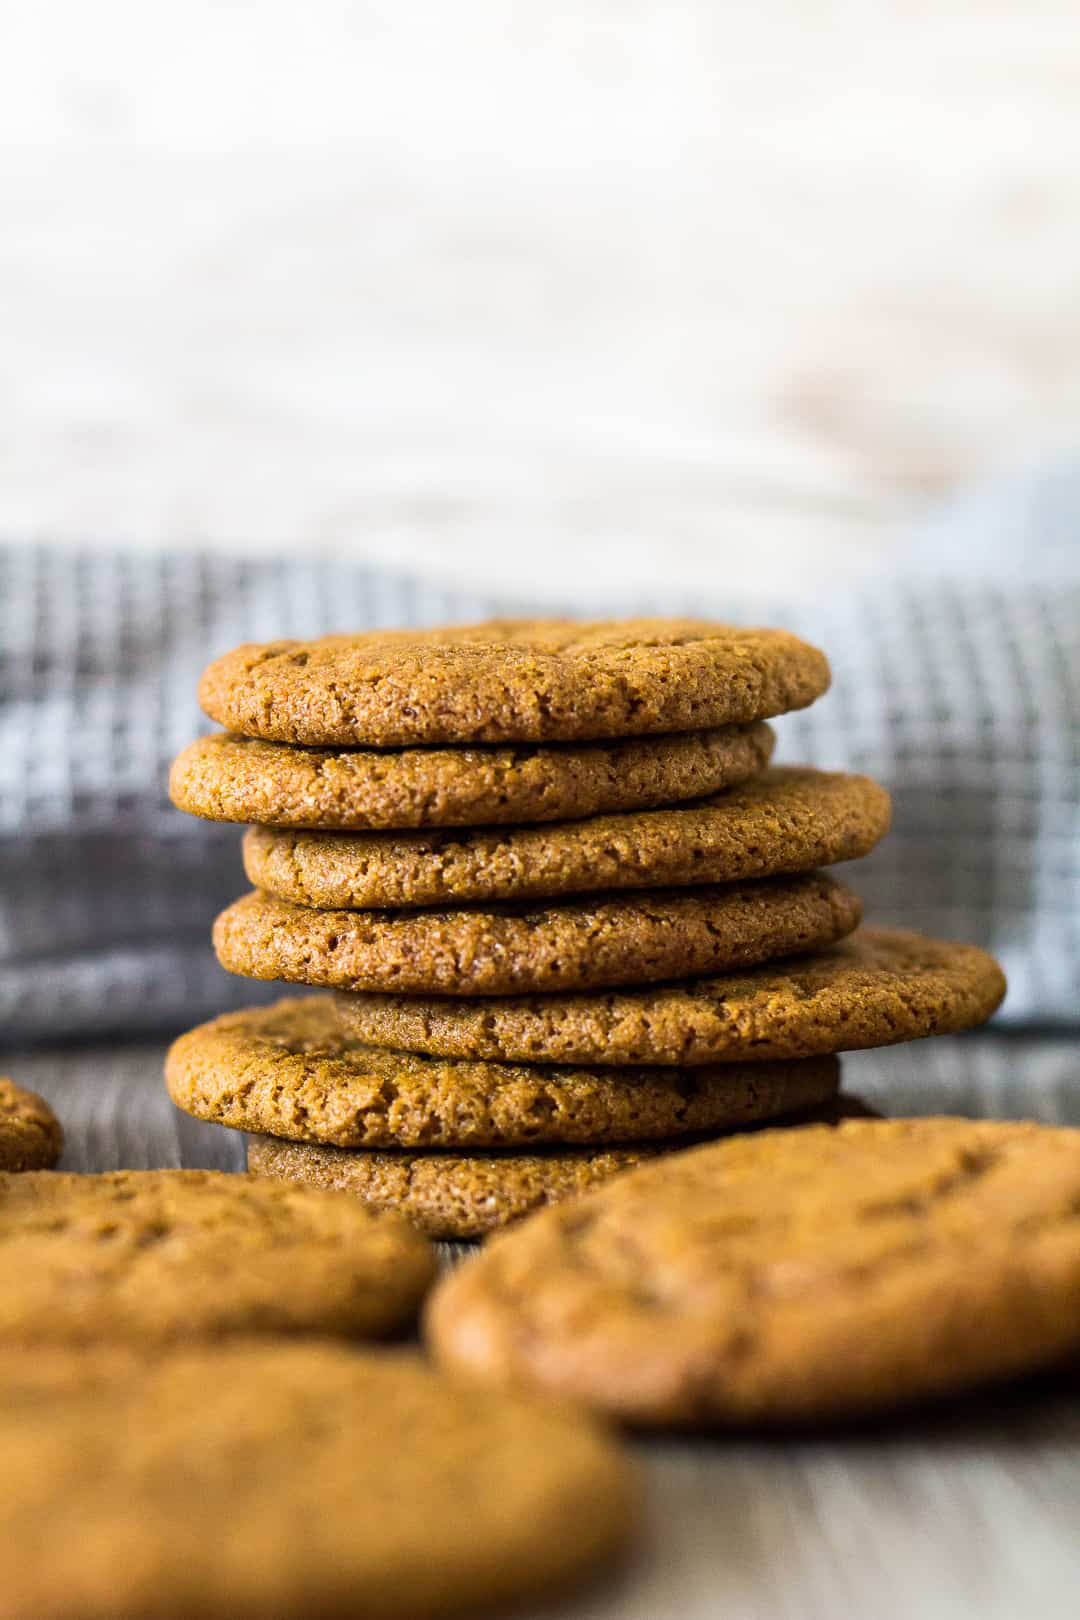 A close-up sideview of a stack of Homemade Gingernut Cookies.